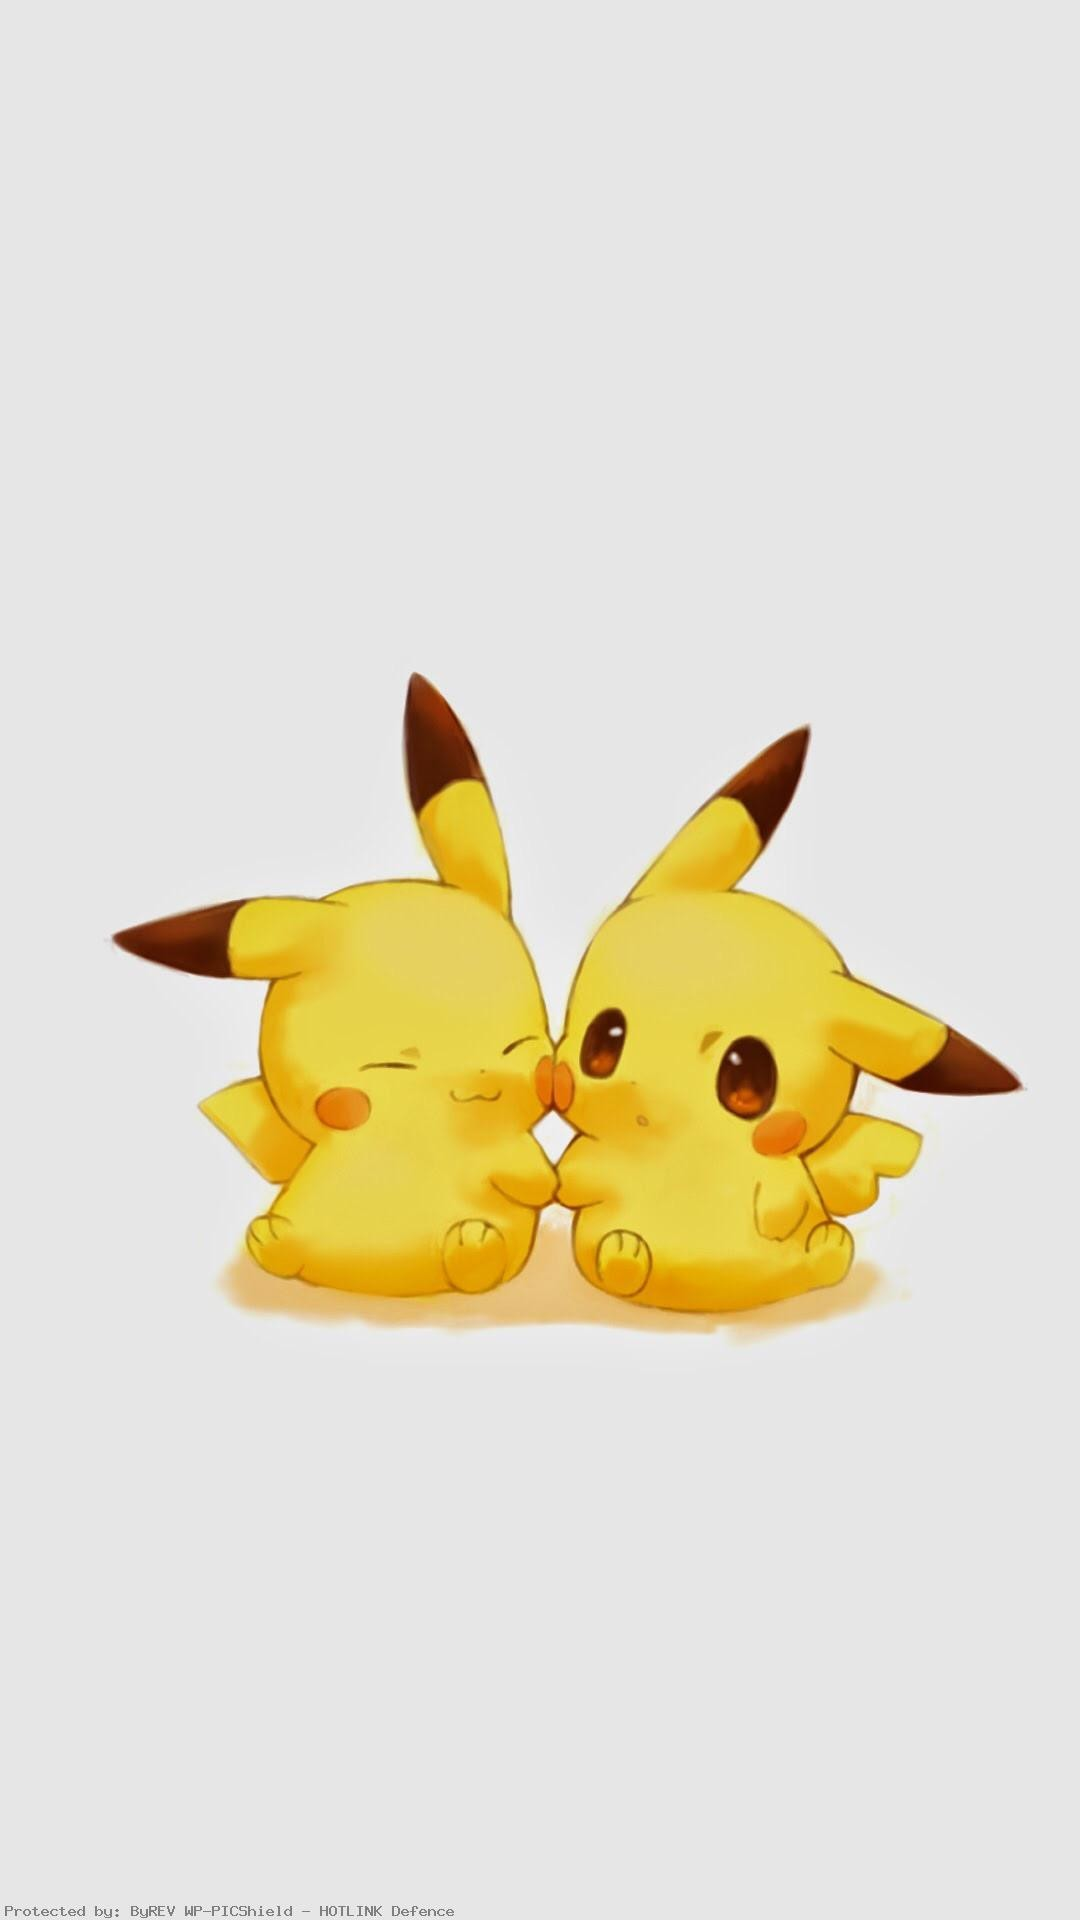 1080x1920 Tap-image-for-more-funny-cute-Pikachu-Pikachu-